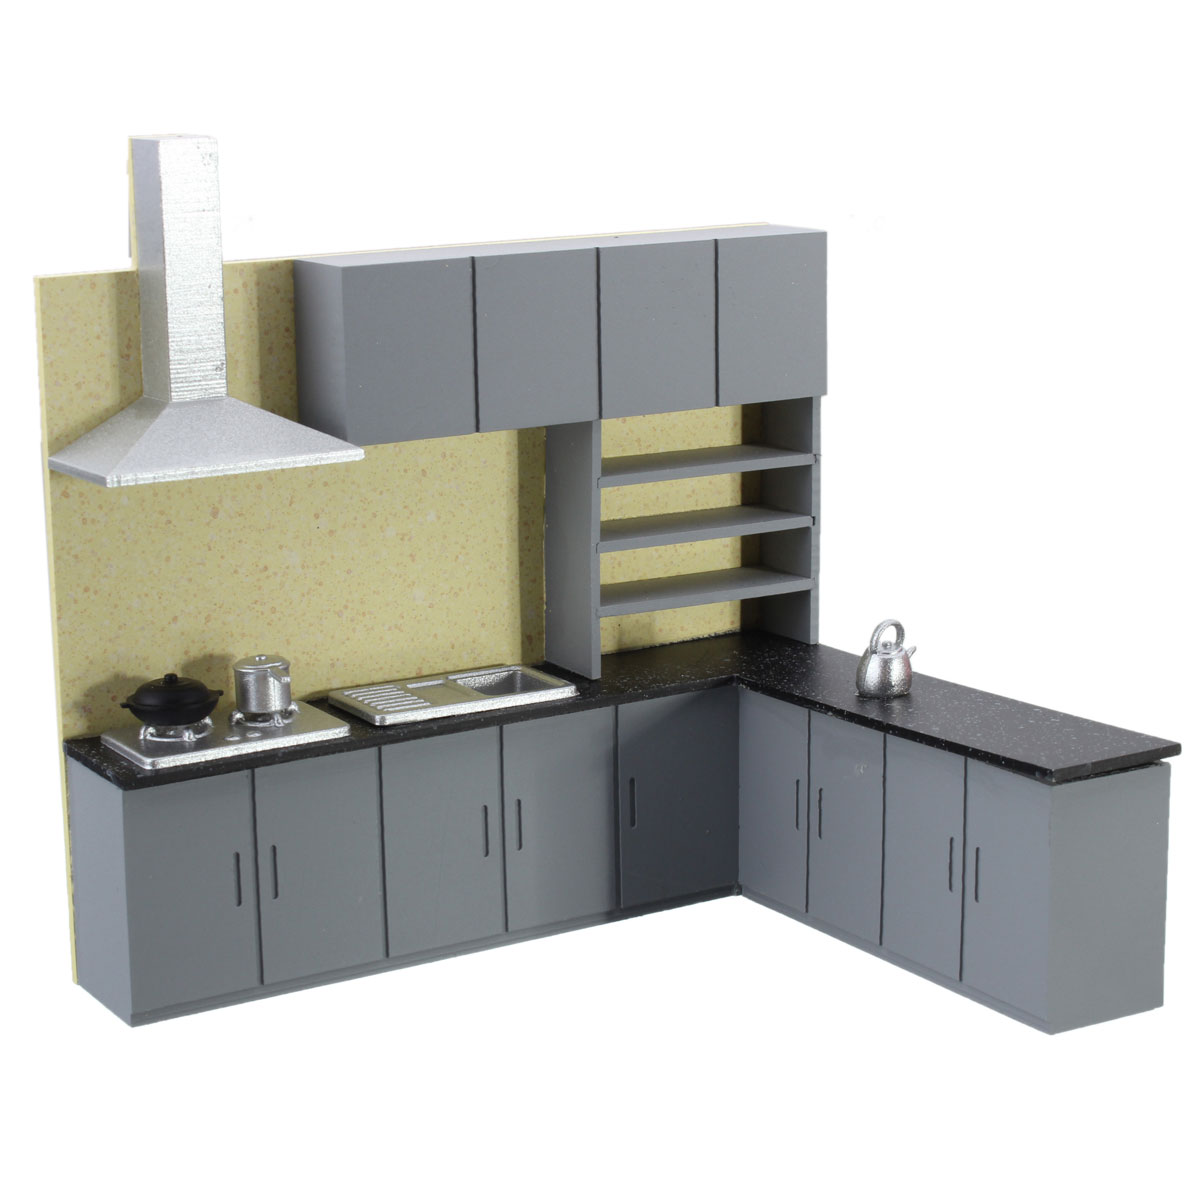 Dollhouse art modern simulation kitchen cabinet set model Scale model furniture